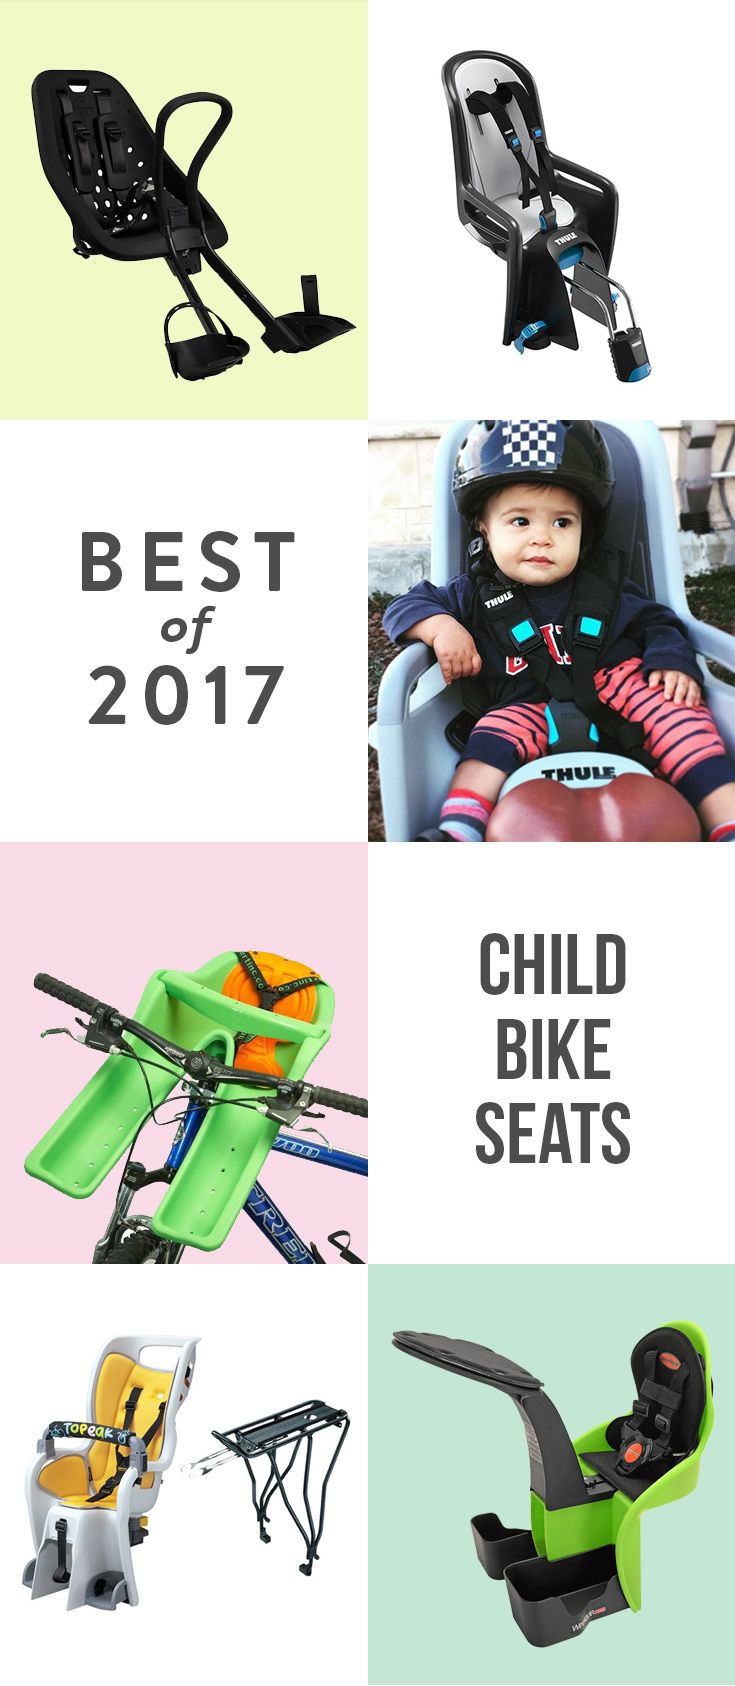 Baby on Board Baby tech, Child bike seat, New baby products